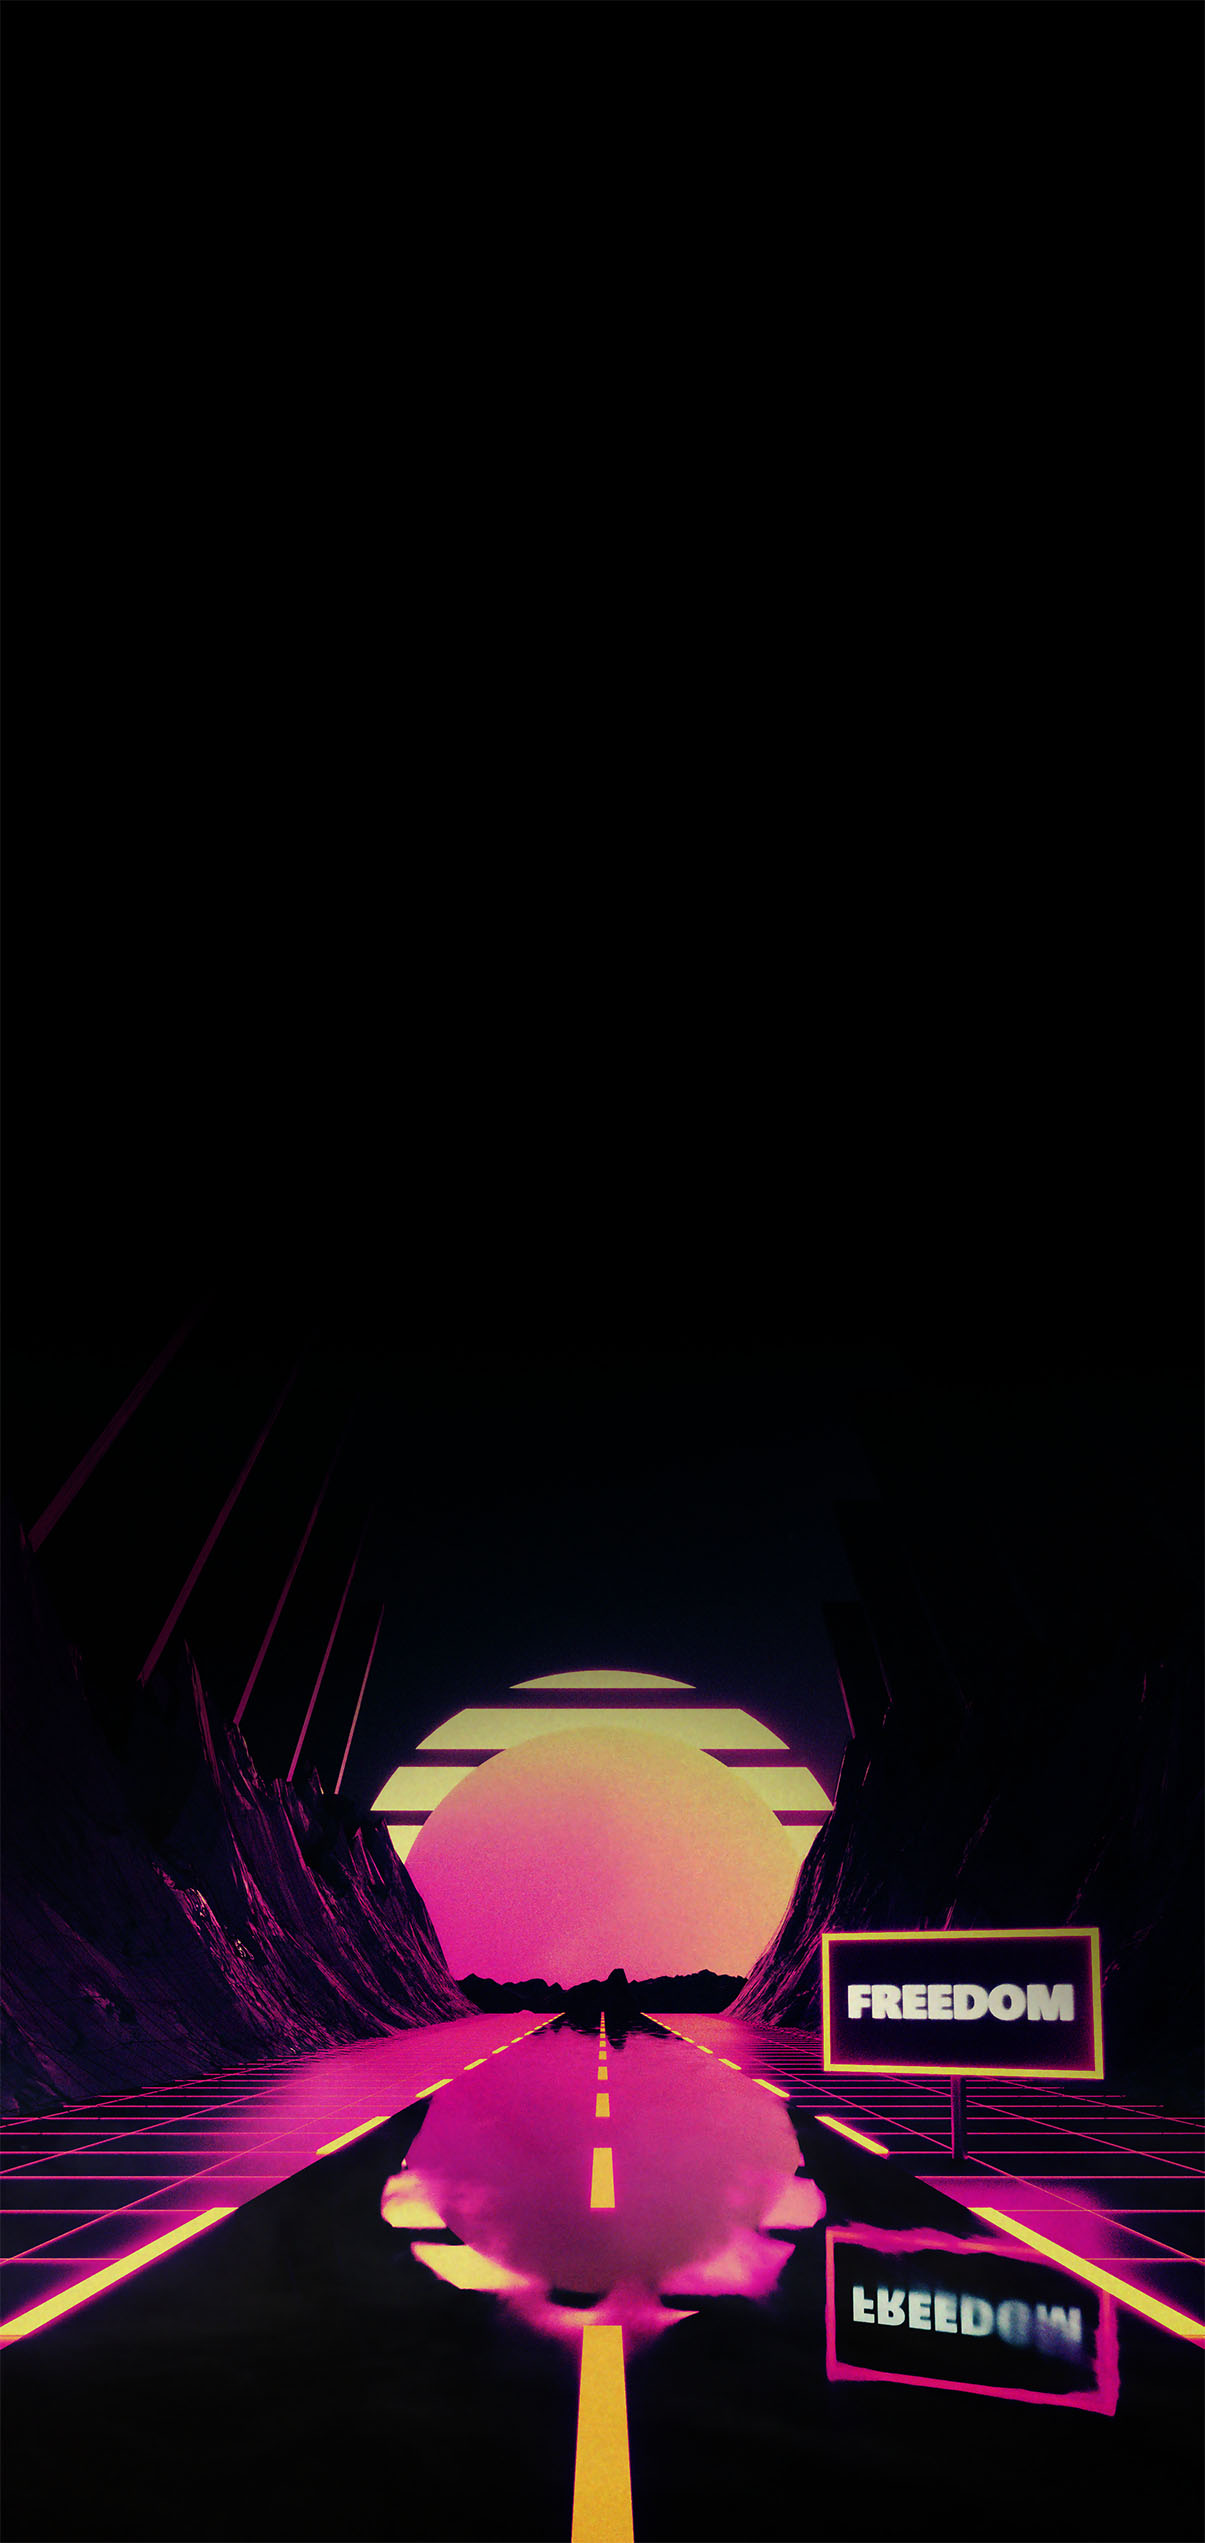 retro road synthwave wallpaper for iphone oled black